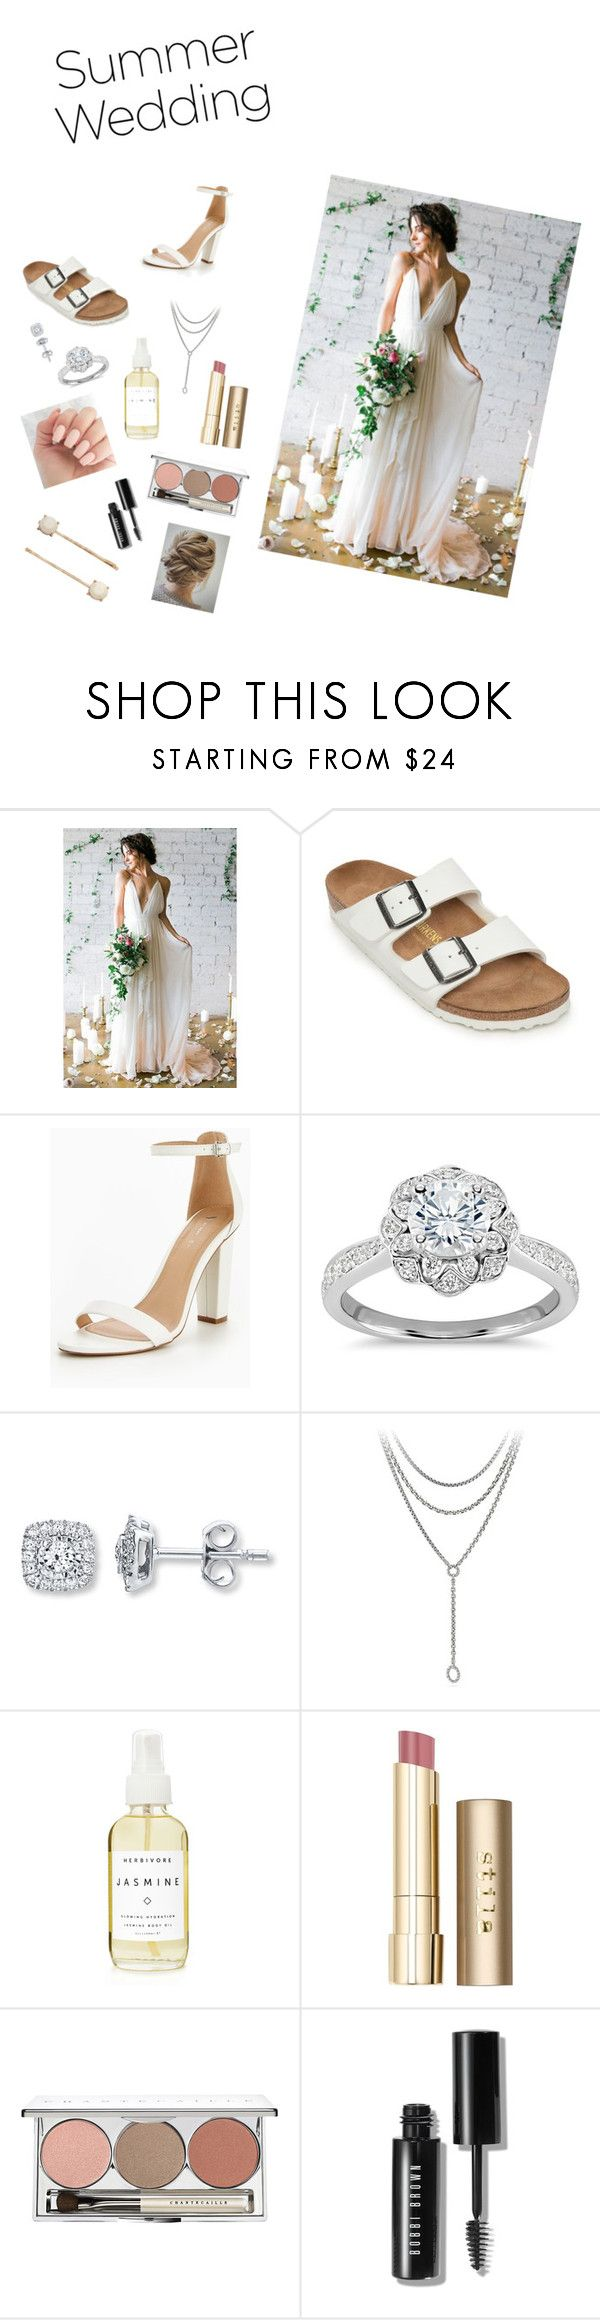 """Summer loven"" by nmp456 ❤ liked on Polyvore featuring Birkenstock, Zac Posen, David Yurman, A Weathered Penny, Stila, Chantecaille, Bobbi Brown Cosmetics and LC Lauren Conrad"